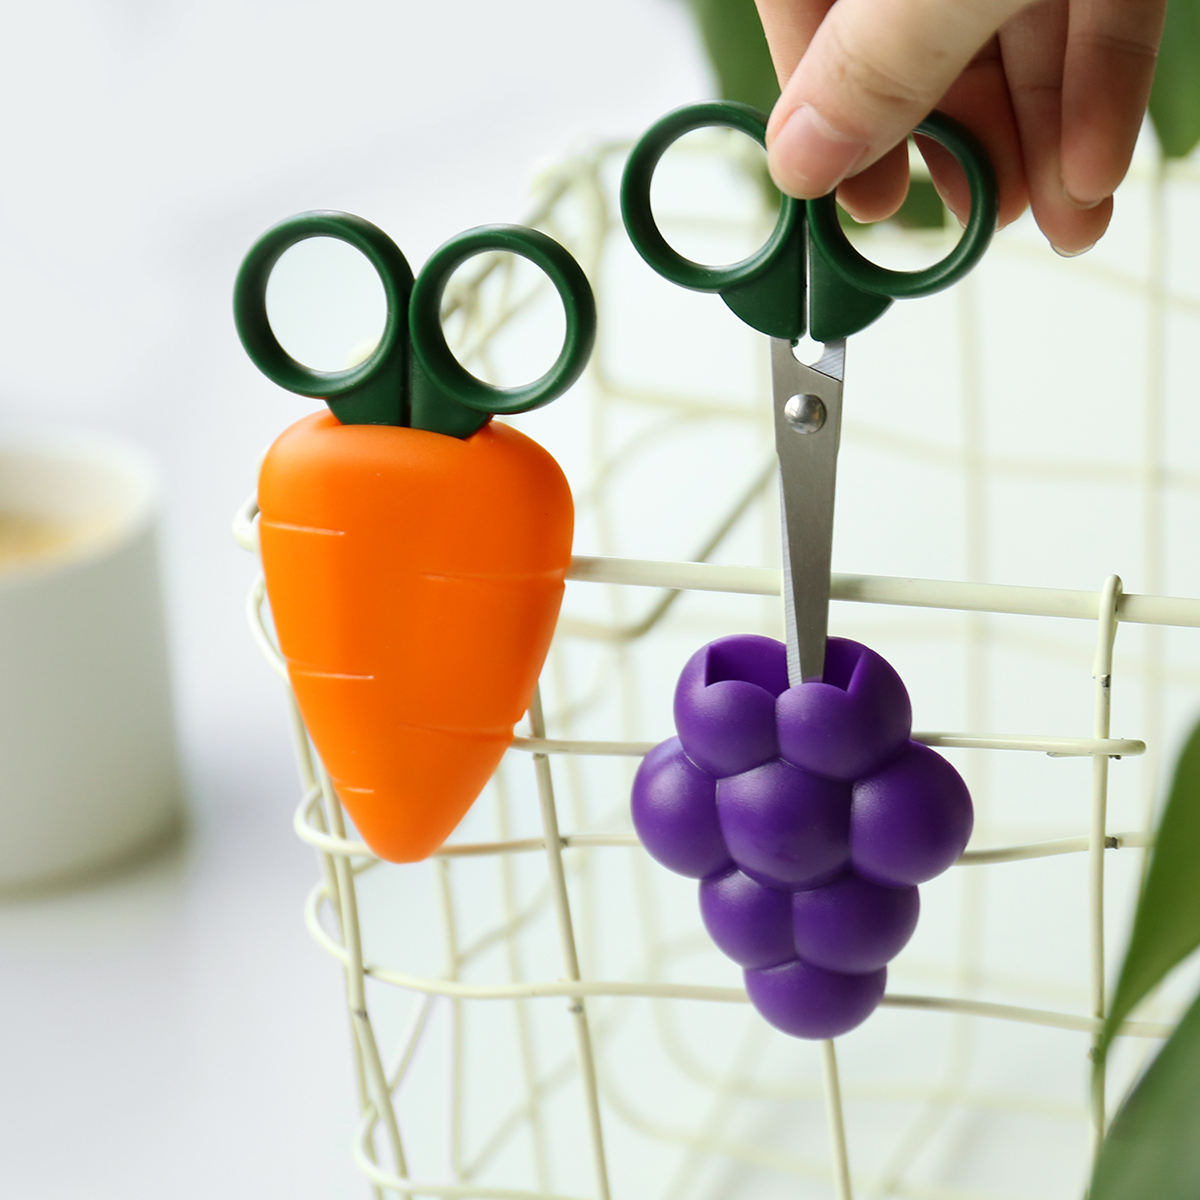 Cute Fruit Mini Safe Scissors Portable Pocket Scissors Stationery For School And Office